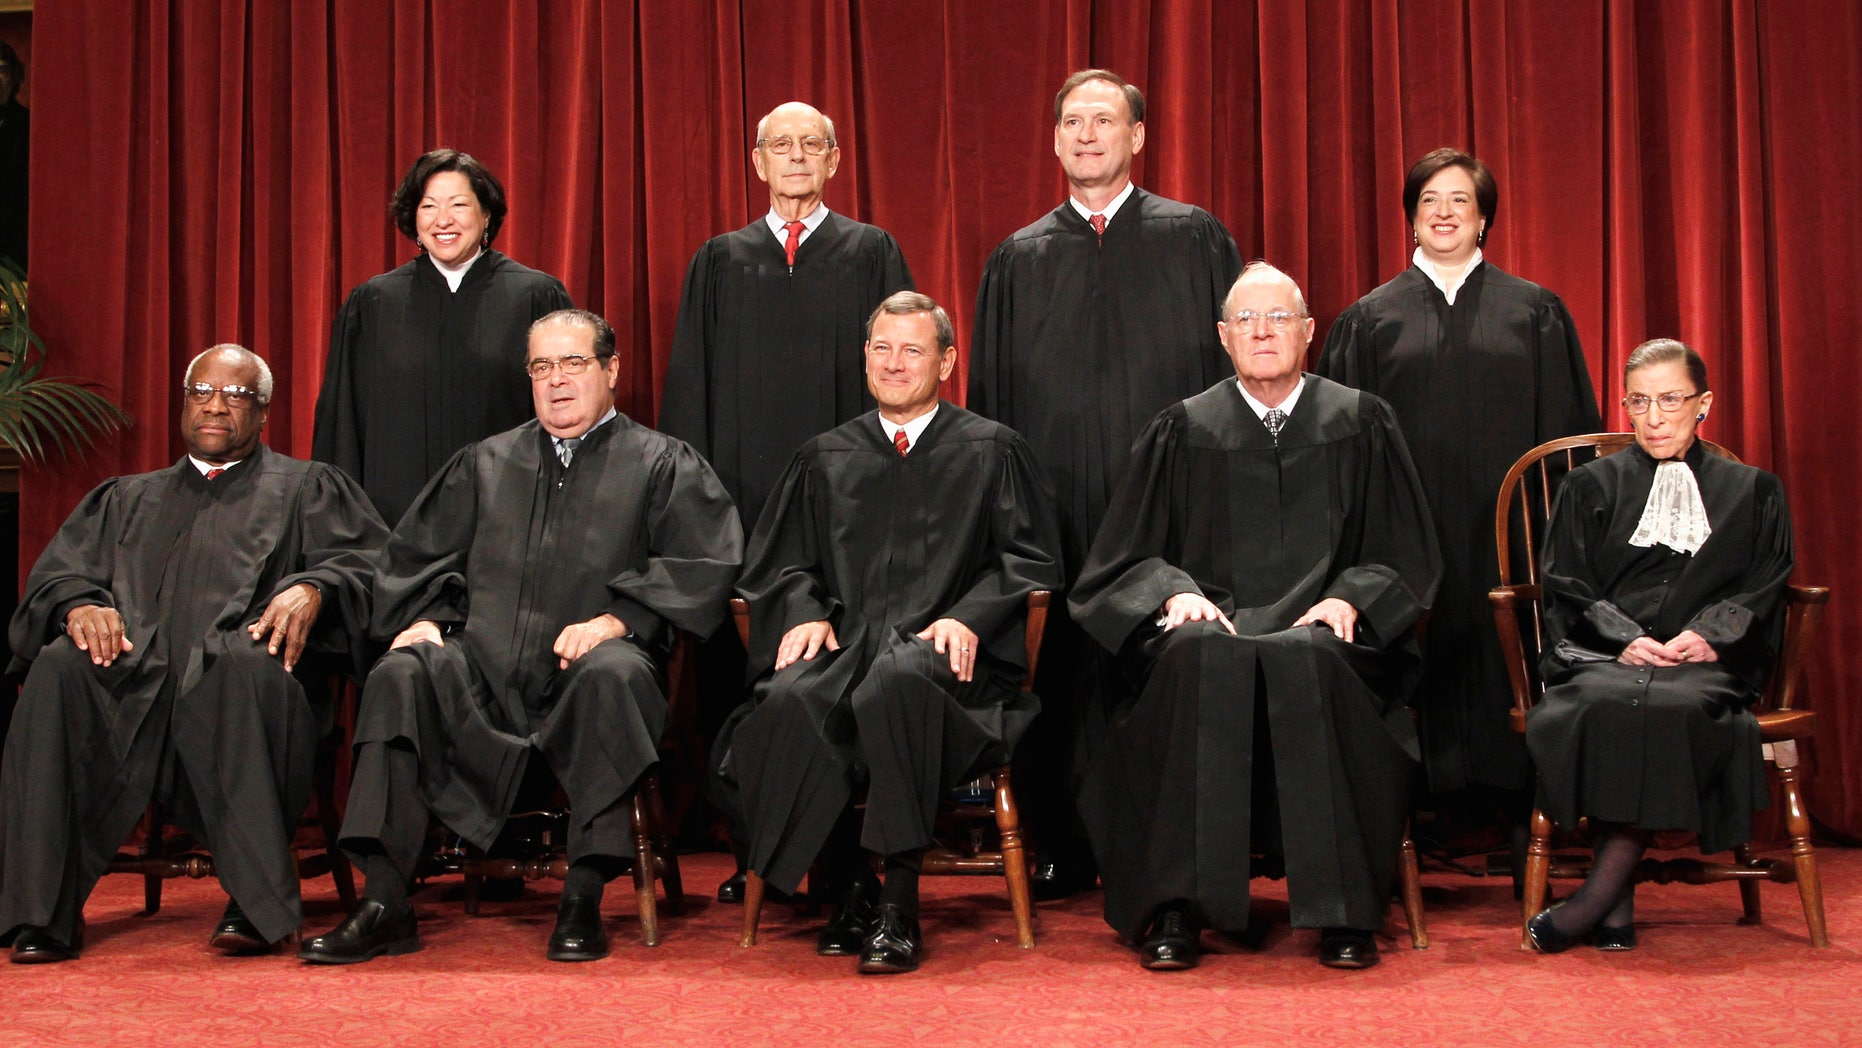 The justices of the U.S. Supreme Court at the Supreme Court in Washington. Seated from left are Associate Justices Clarence Thomas, and Antonin Scalia, Chief Justice John Roberts, Associate Justices Anthony M. Kennedy and Ruth Bader Ginsburg. Standing, from left are Associate Justices Sonia Sotomayor, Stephen Breyer, Samuel Alito Jr., and Elena Kagan.